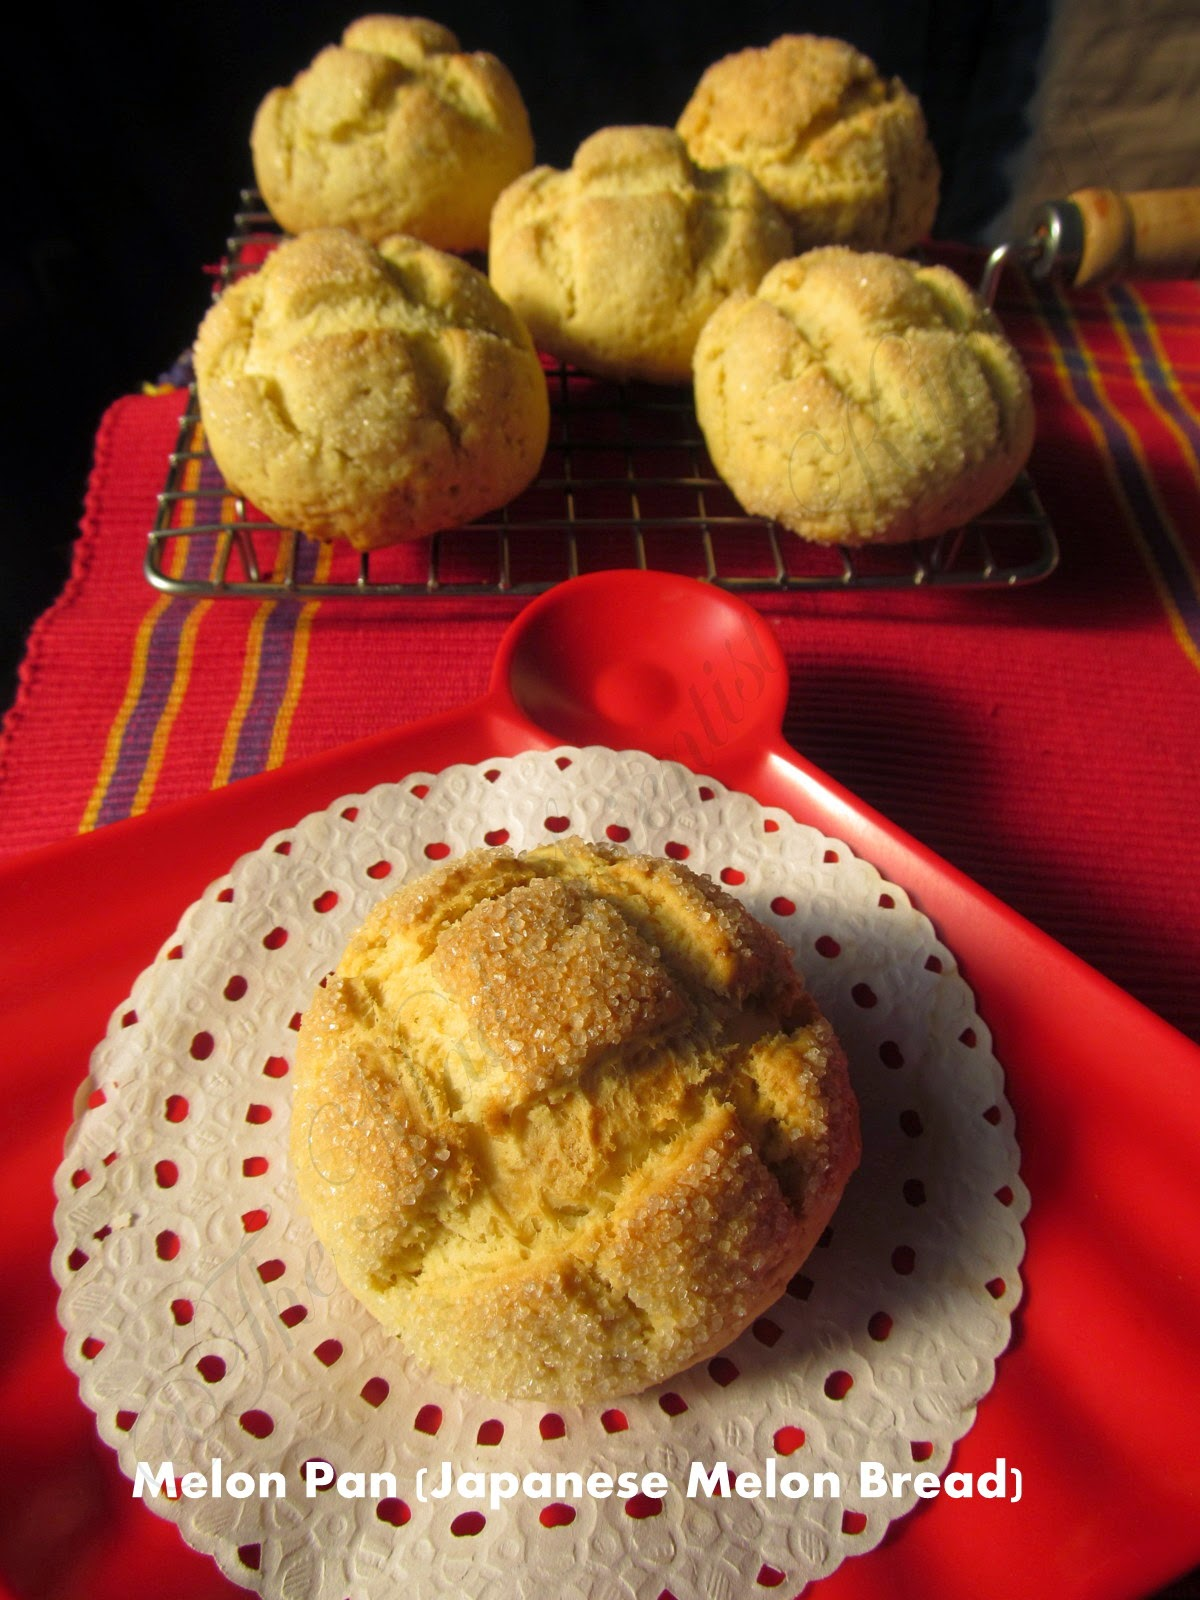 Melon Pan (Japanese Melon Bread)